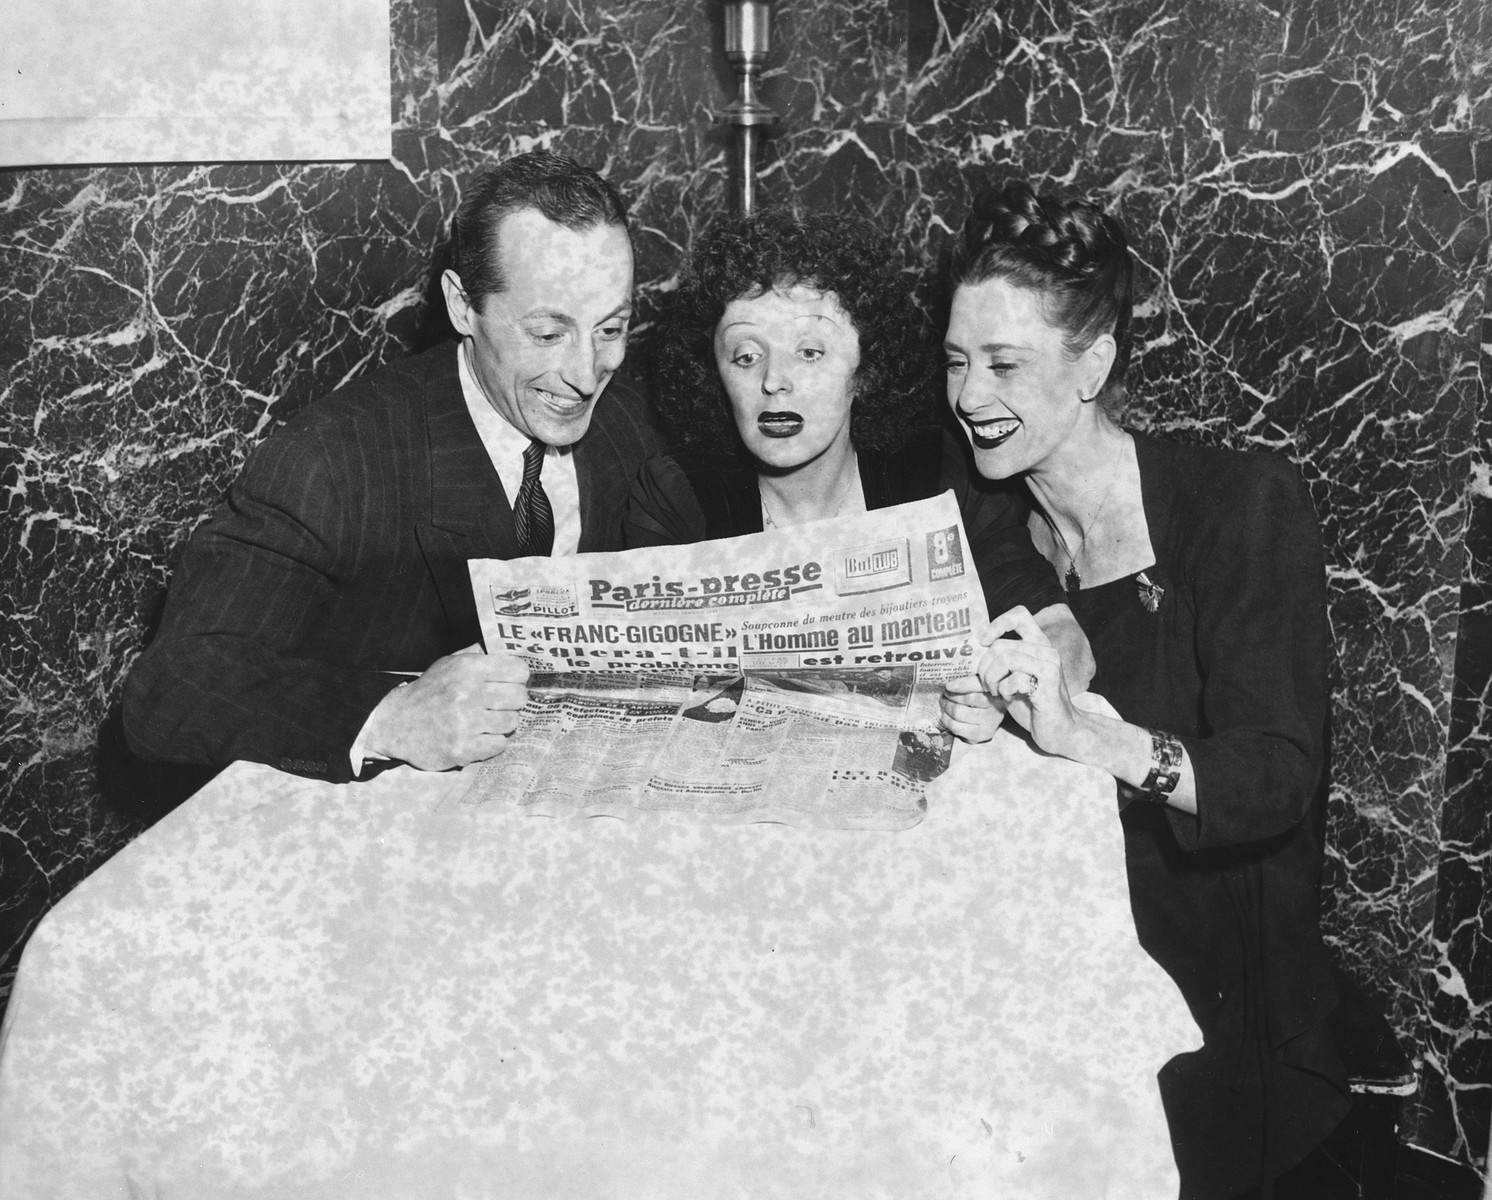 Three French singers and dancers huddle around an open French newspaper.  Sadie Rigal, who is actually a Jew in hiding, is pictured on the right.  On the left is her dance partner, Frederic Apcar.  Edith Piaf is in the center.